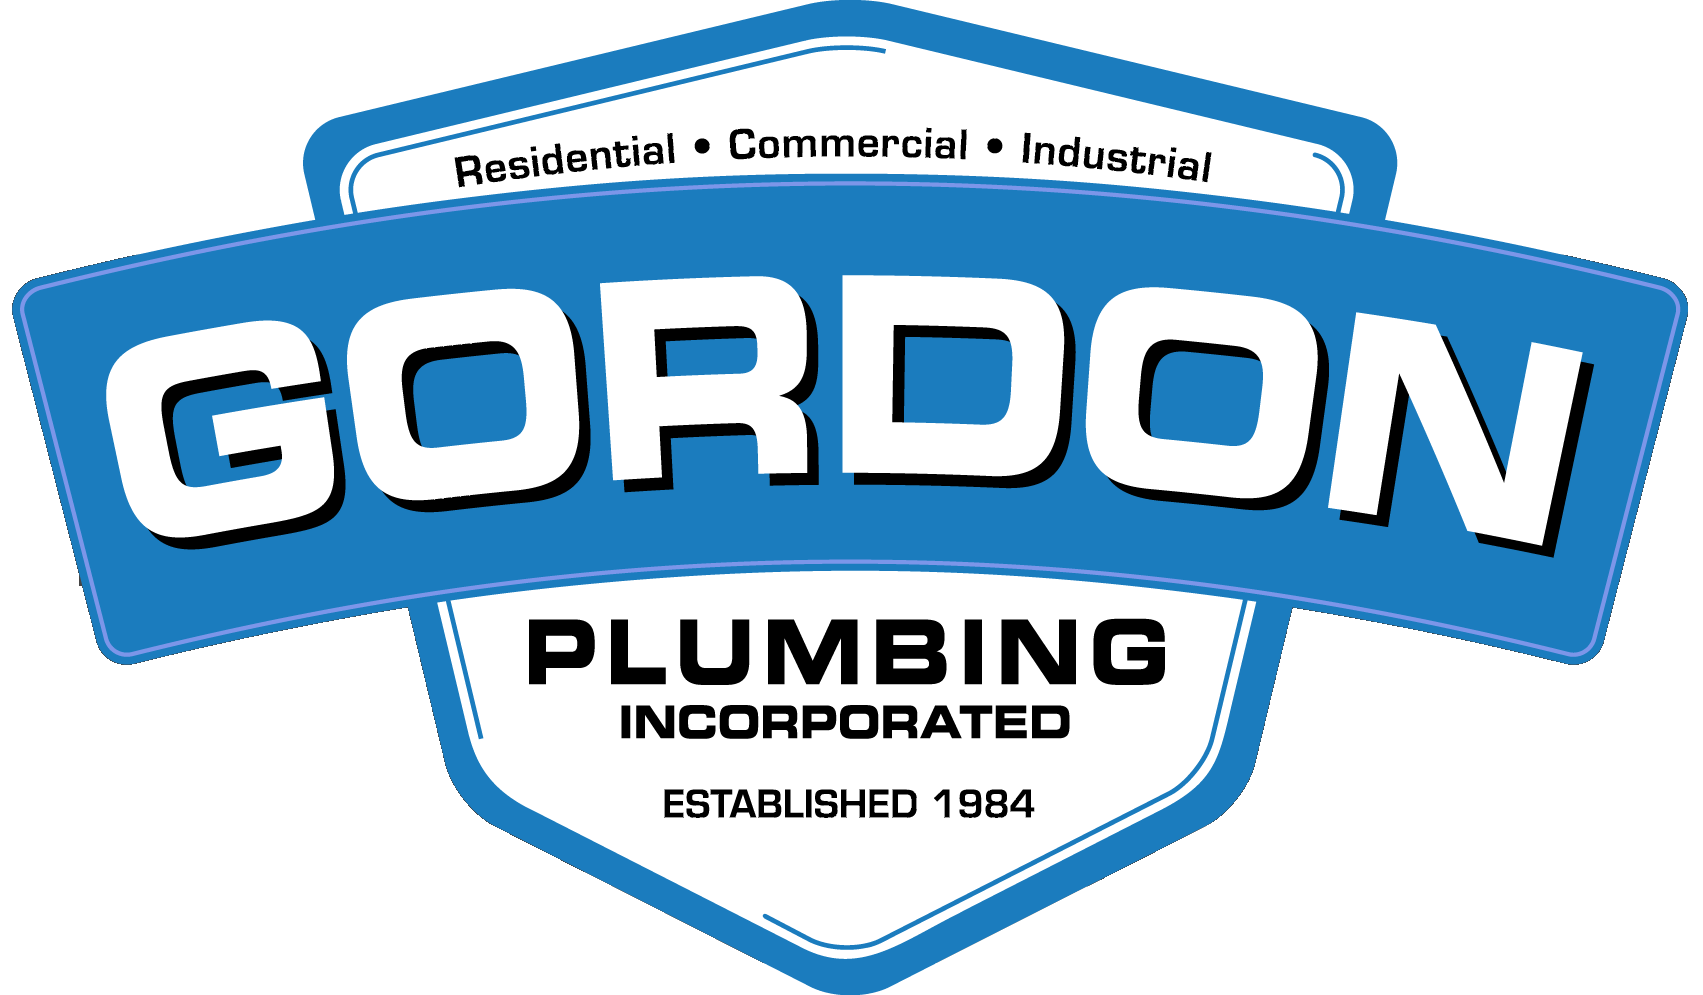 Gordon Plumbing Specialize In Providing Plumbing Solutions To Residential Commercial And Industrial Customers And Our Sewer Repair Plumbing Plumbing Companies